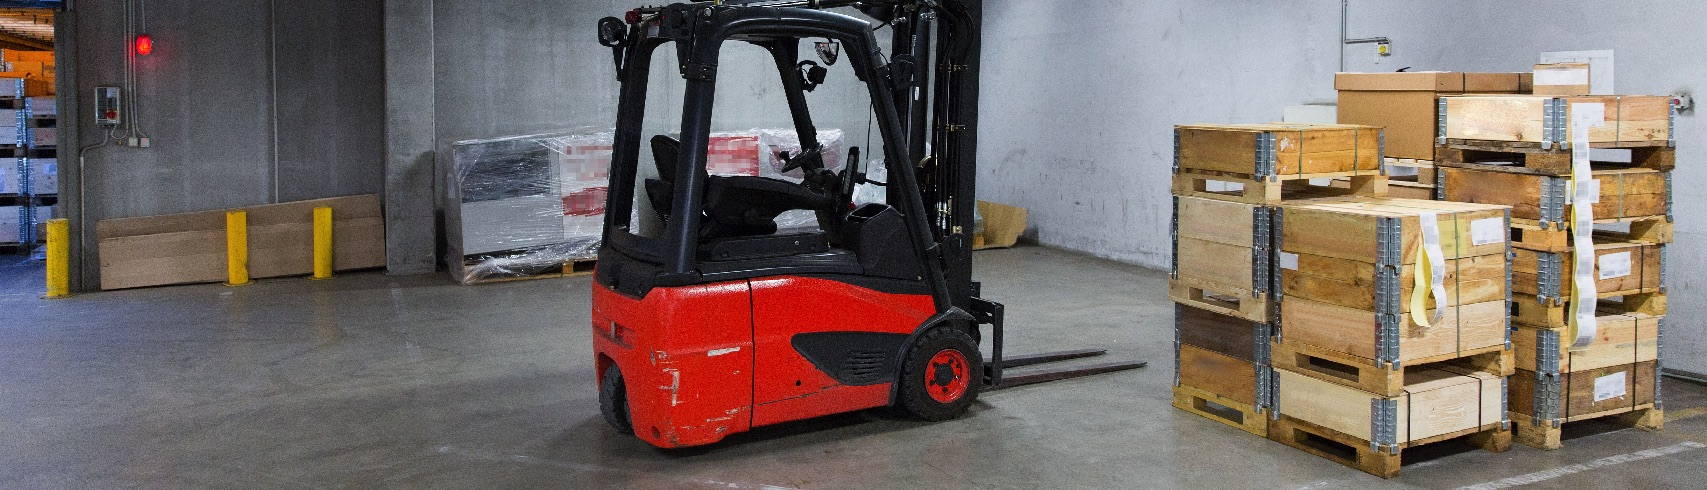 Forklift Rental San Francisco CA